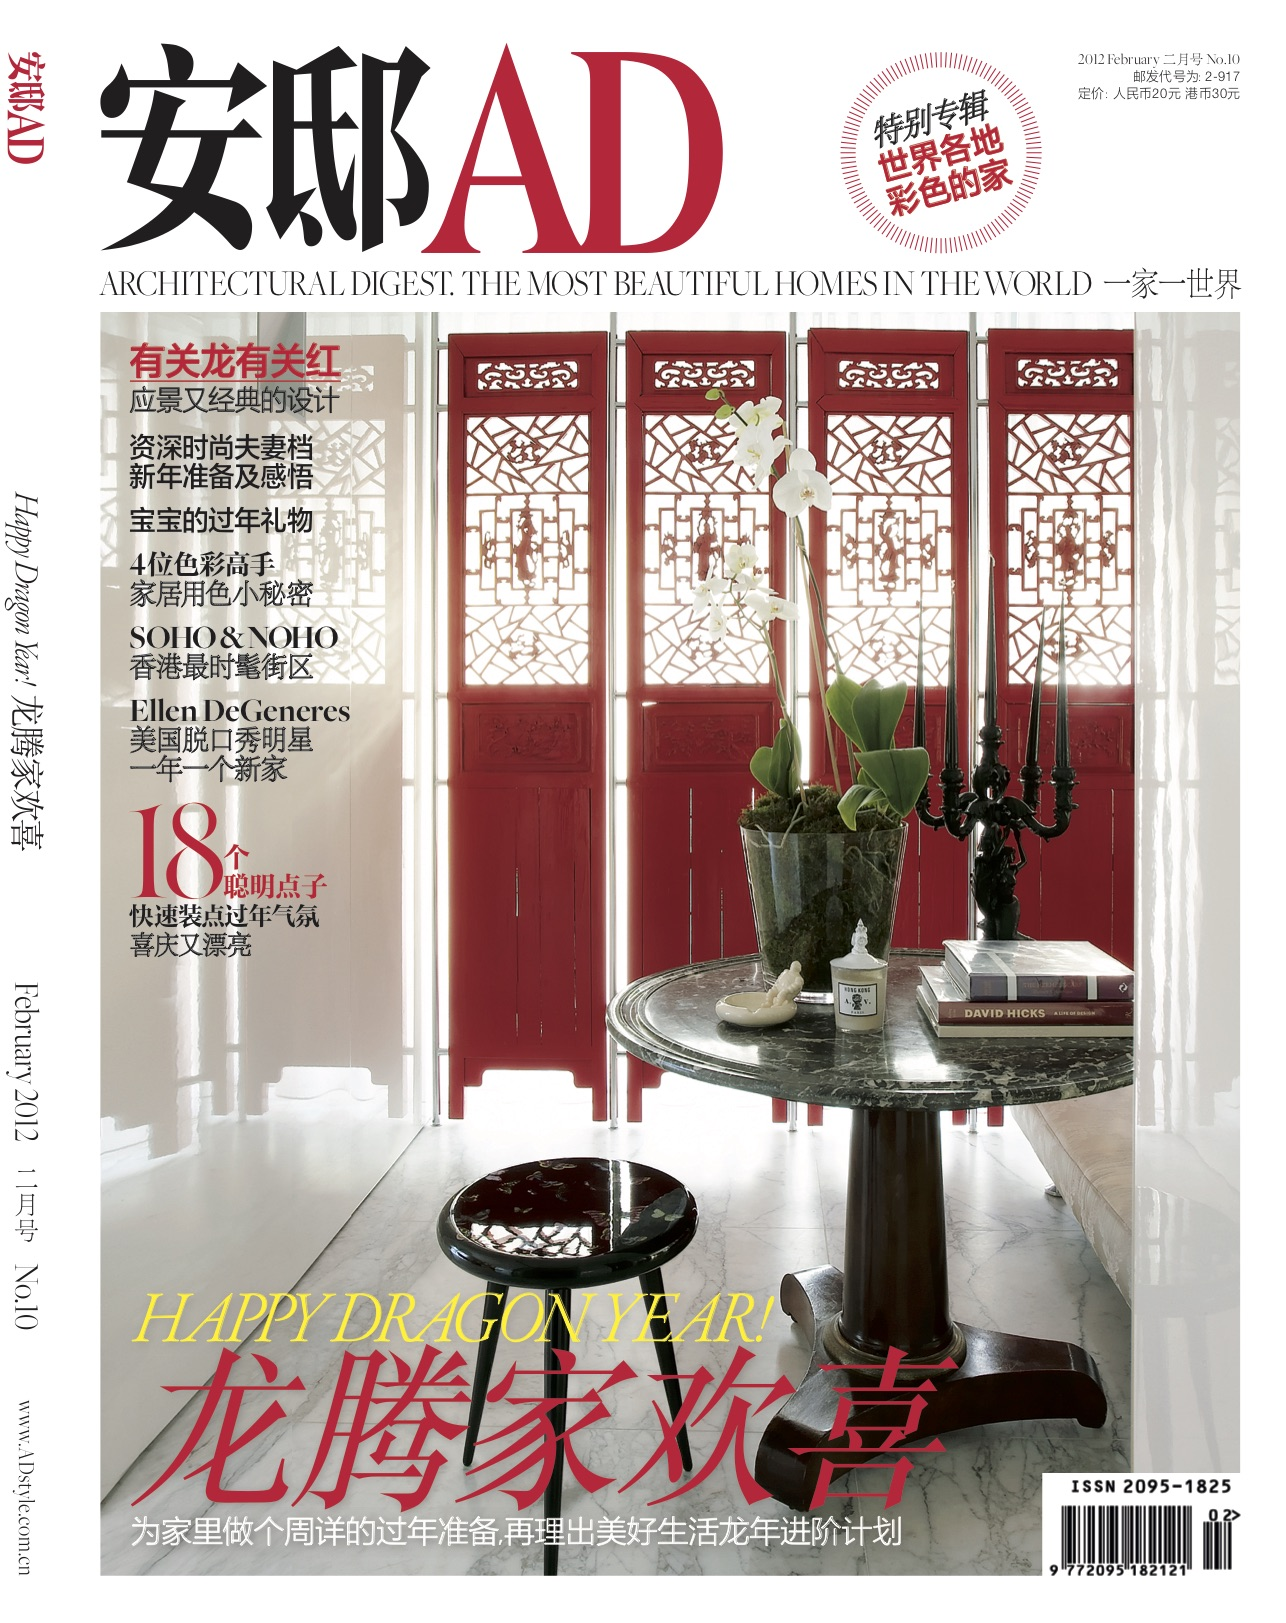 Architectural digest china Feb 2012 cover.jpg